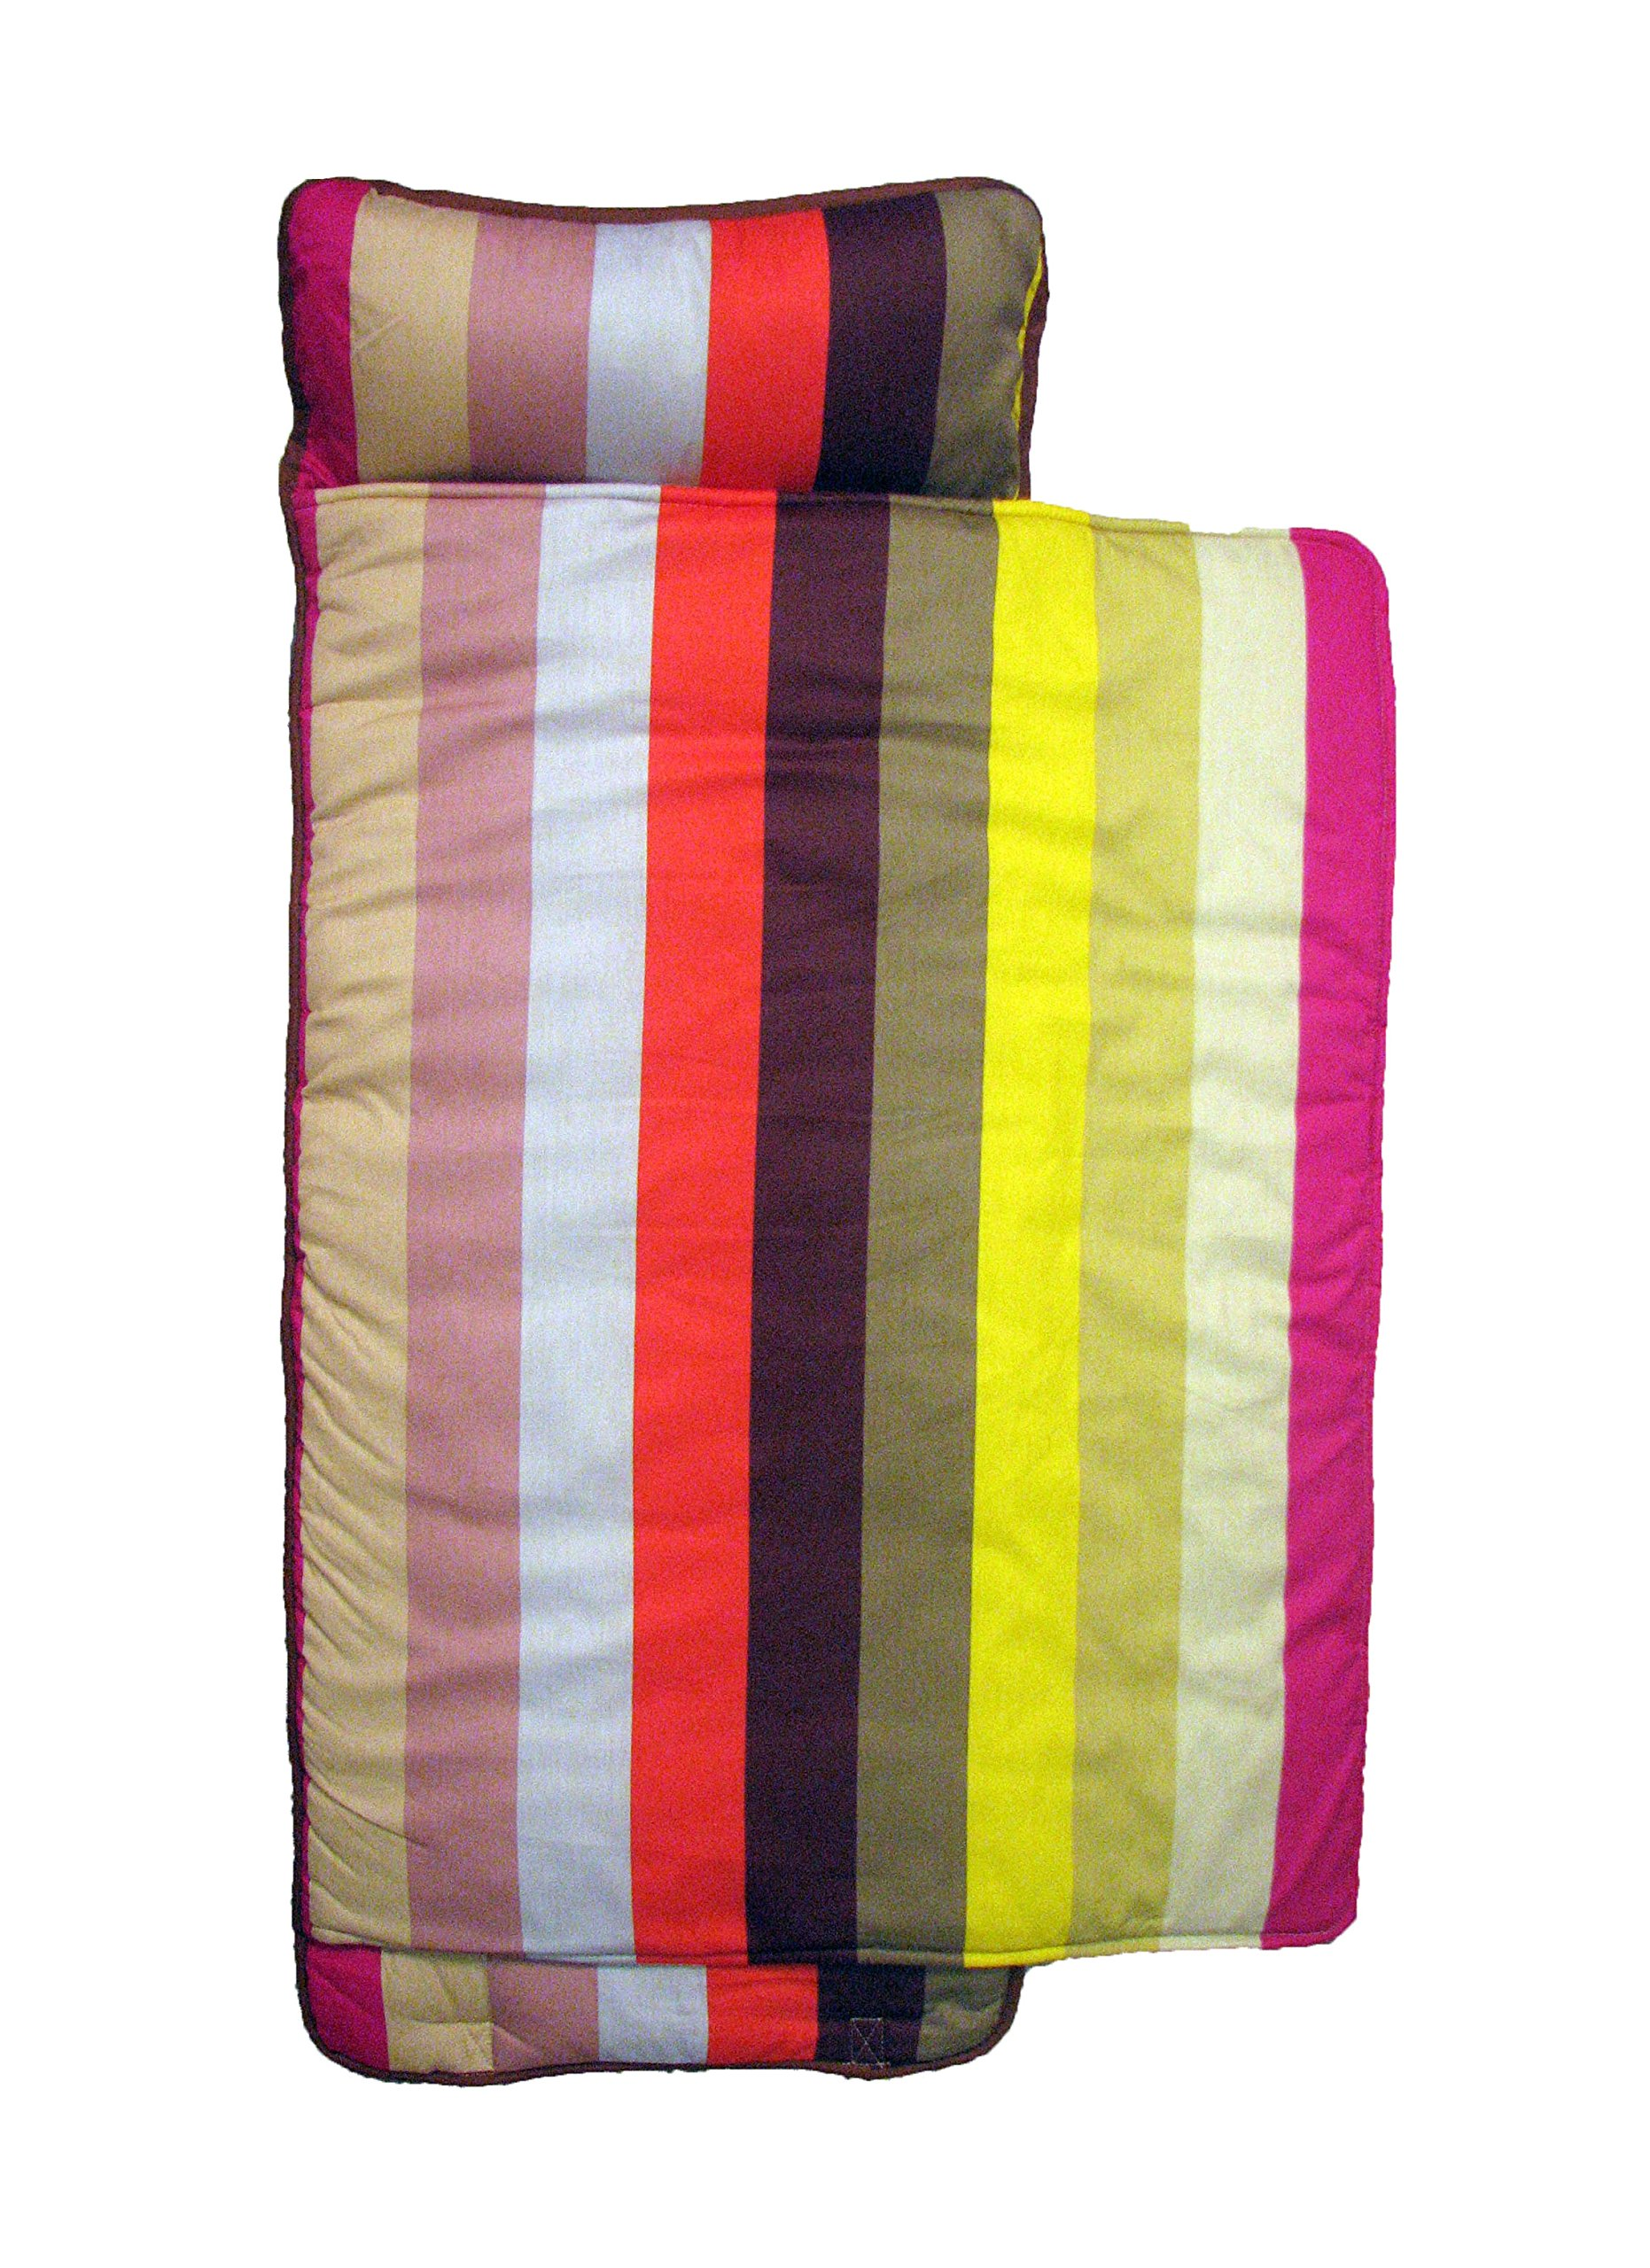 SoHo New York Stripe nap mat for toddler preschool day care with pillow lightweight rolled nap mats